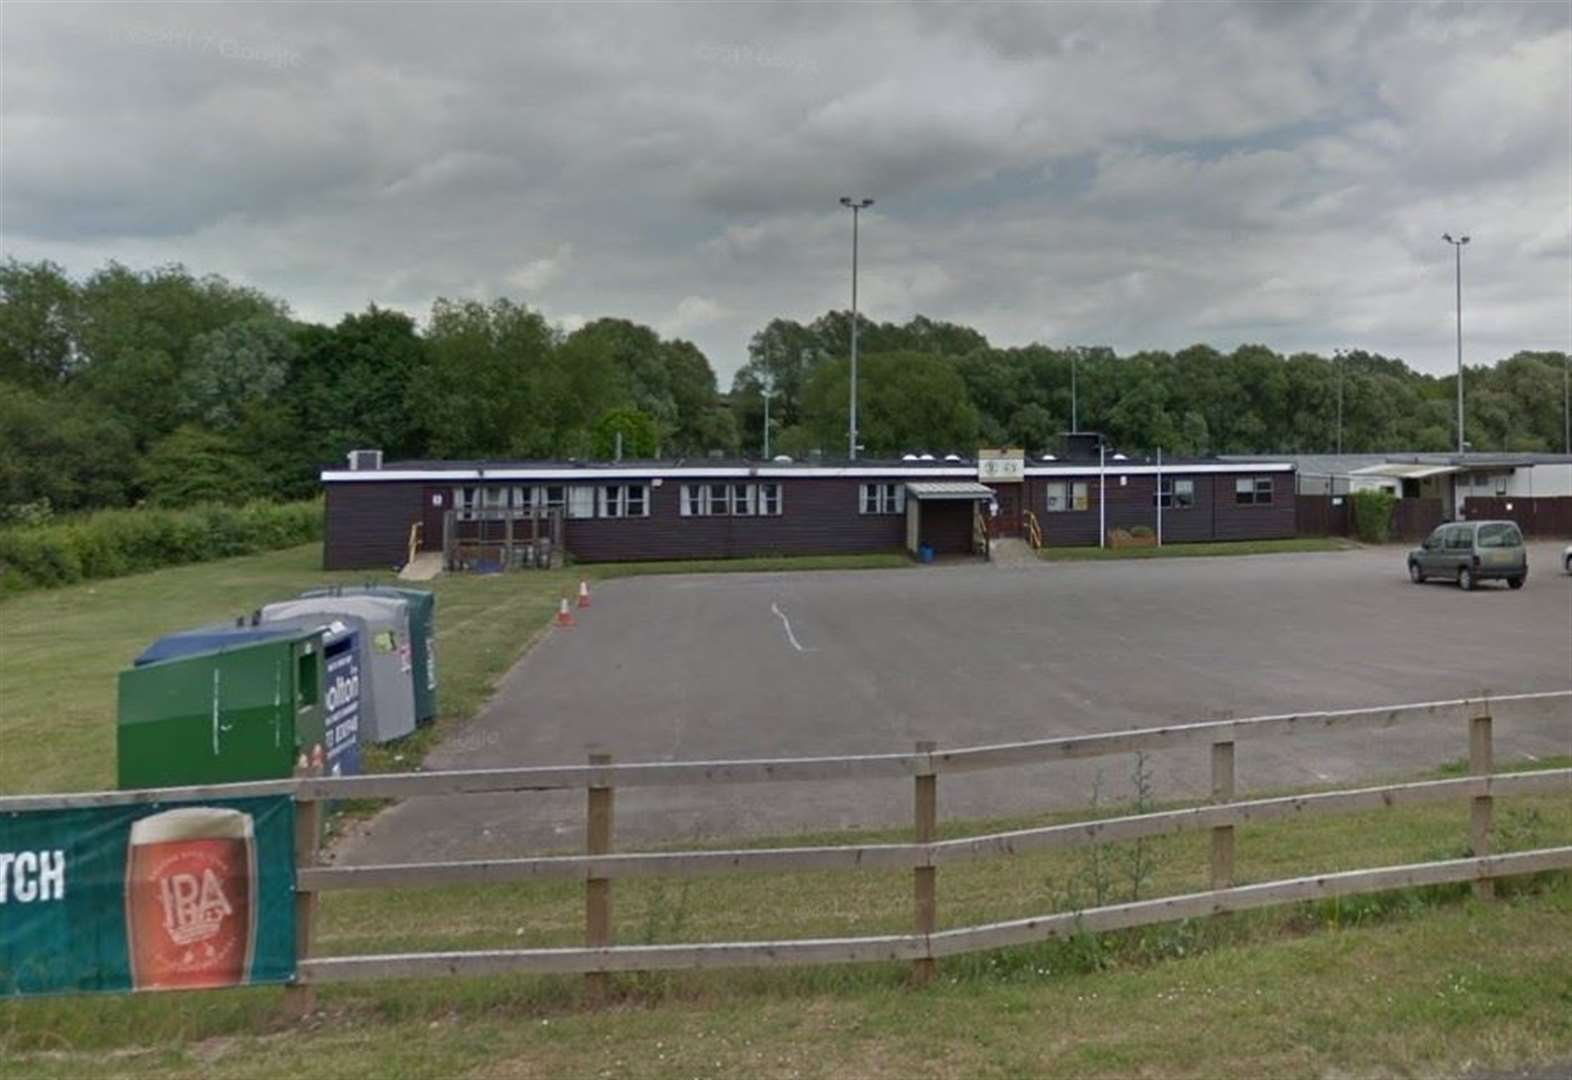 Council agree fifty year lease for Stowmarket FC ground